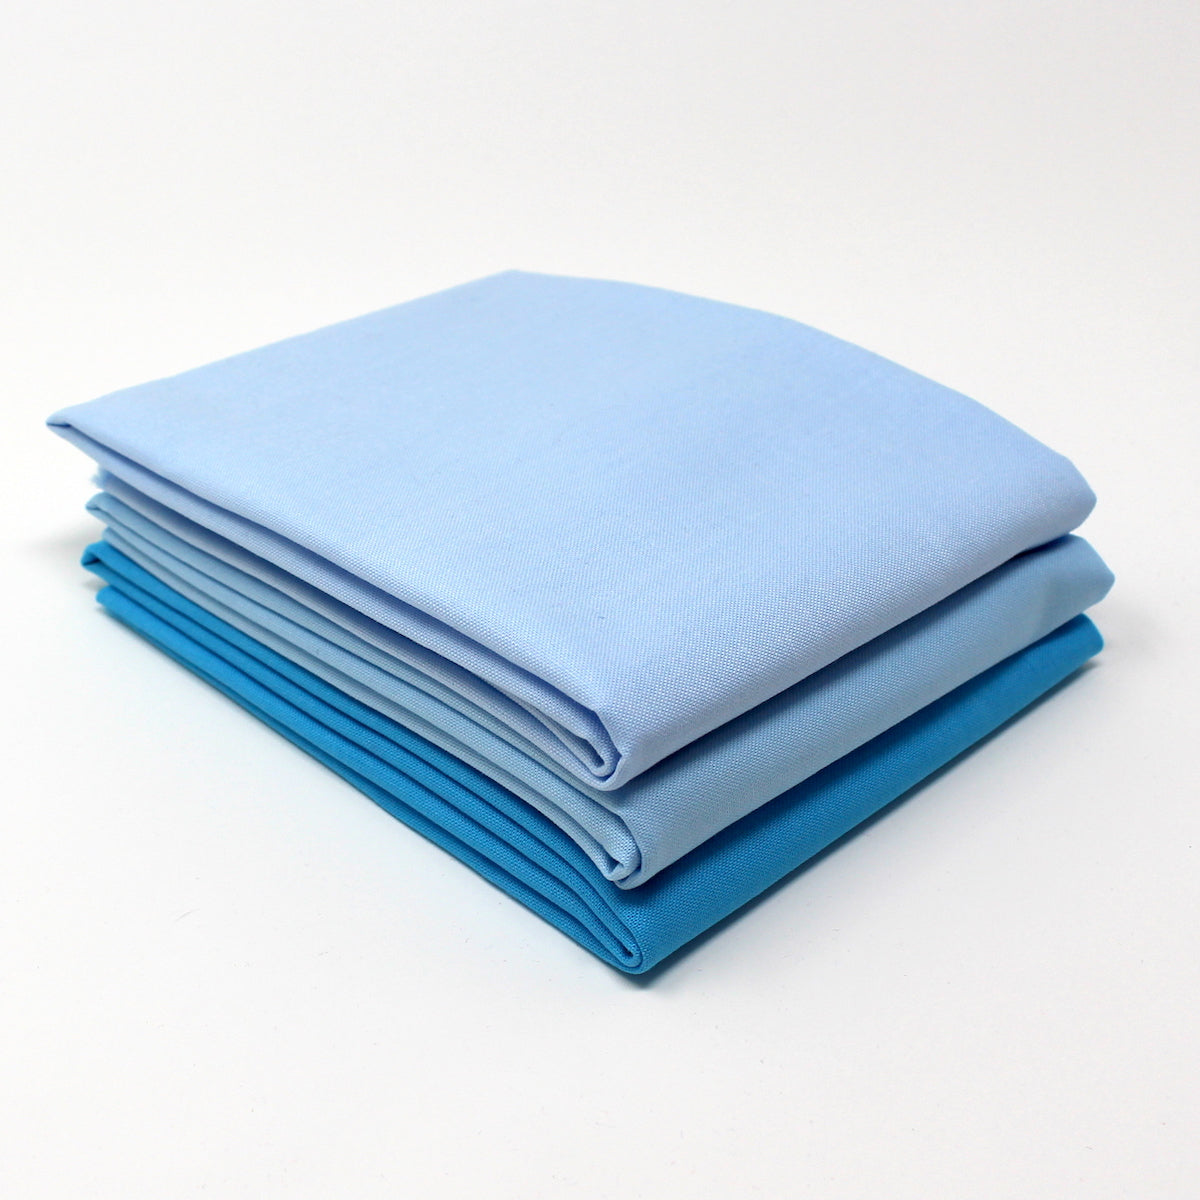 Cyan Light 3 Fat Quarter Bundle - Kona Cotton